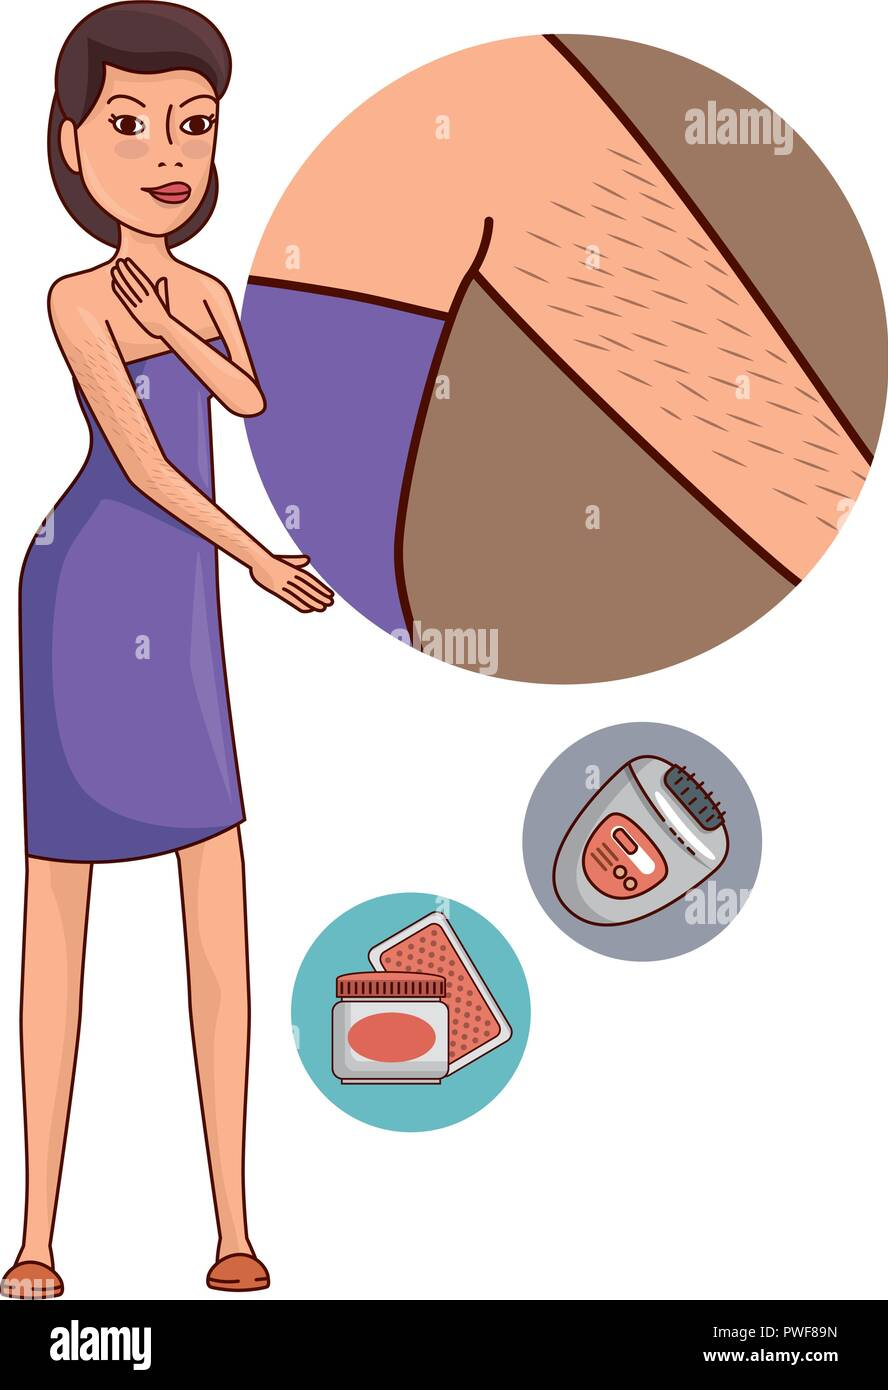 woman in towel waxing armpit with products - Stock Image